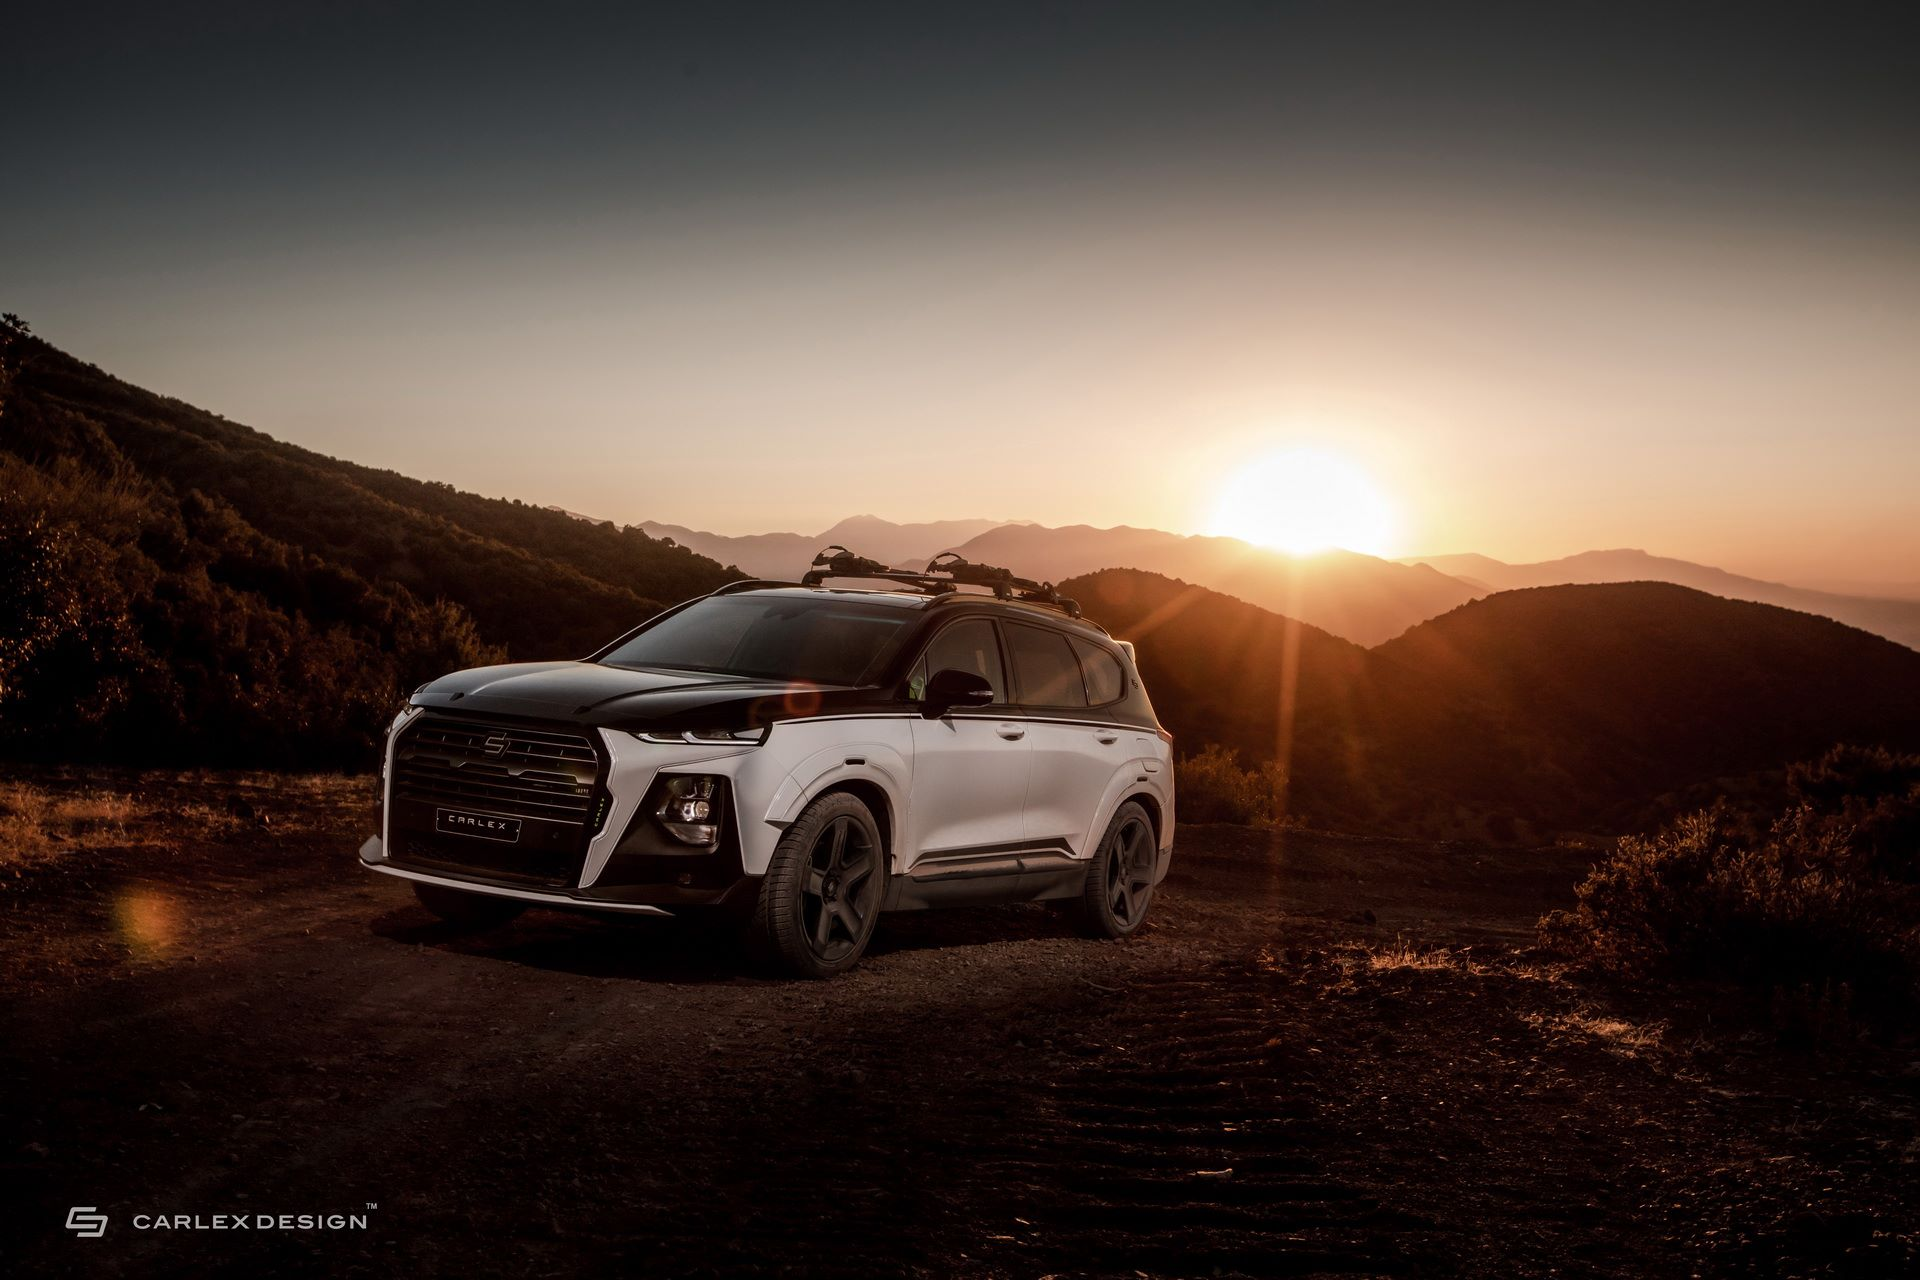 Hyundai-Santa-Fe-Urban-Edition-by-Carlex-Design-19